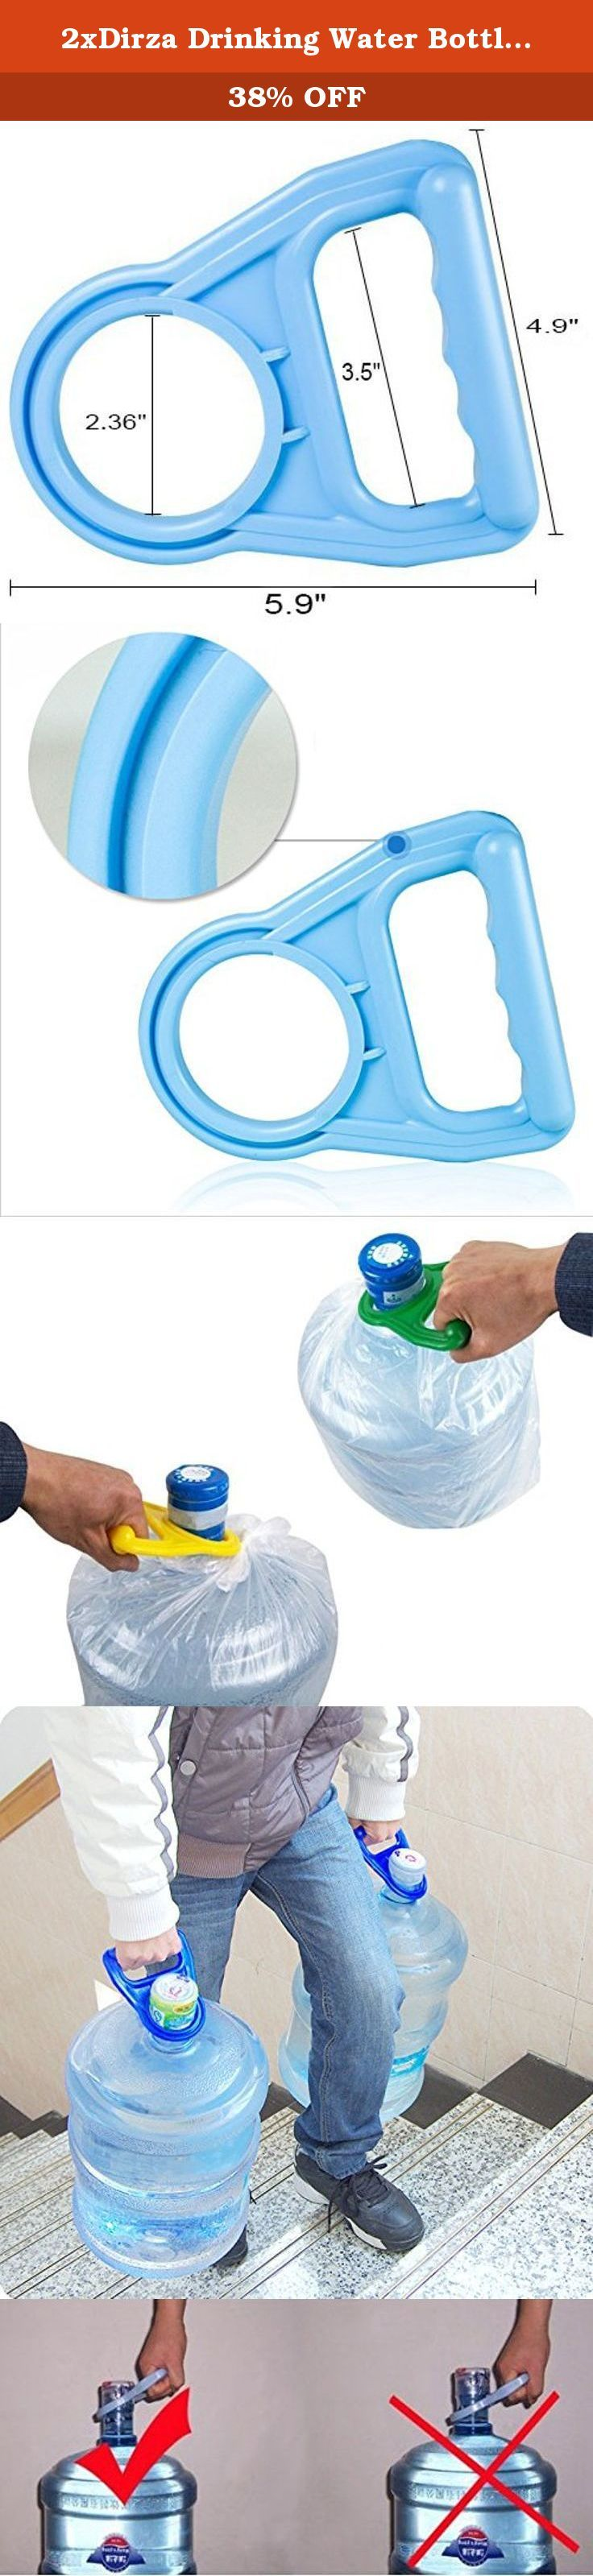 2xDirza Drinking Water Bottle Handle Bottle Lifter - Easy Lifting - Fit Any Type of Bottle - Assorted Colors. This water bottle handle designed to lift the 3/5/6 gallon bottles.With this helpful handle you can easy carry a heavy water bottle. This handle fits all standard 55mm Crown Top 3, 6, and 5 gallon water polycarbonate bottles with cap . .